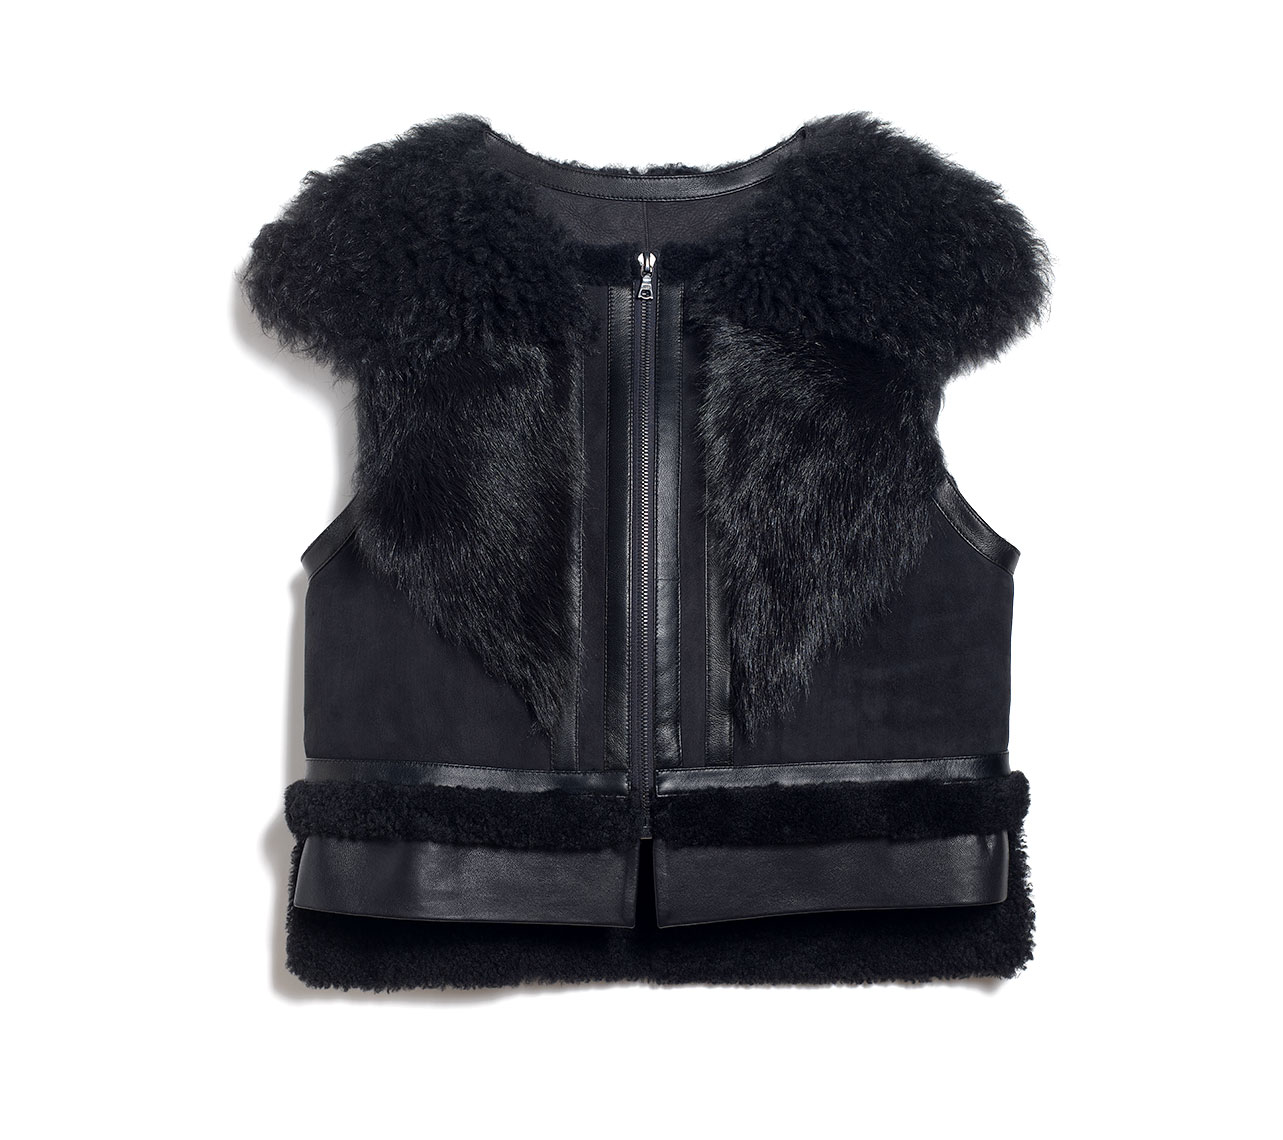 fashion_accessories_vest_black_fur